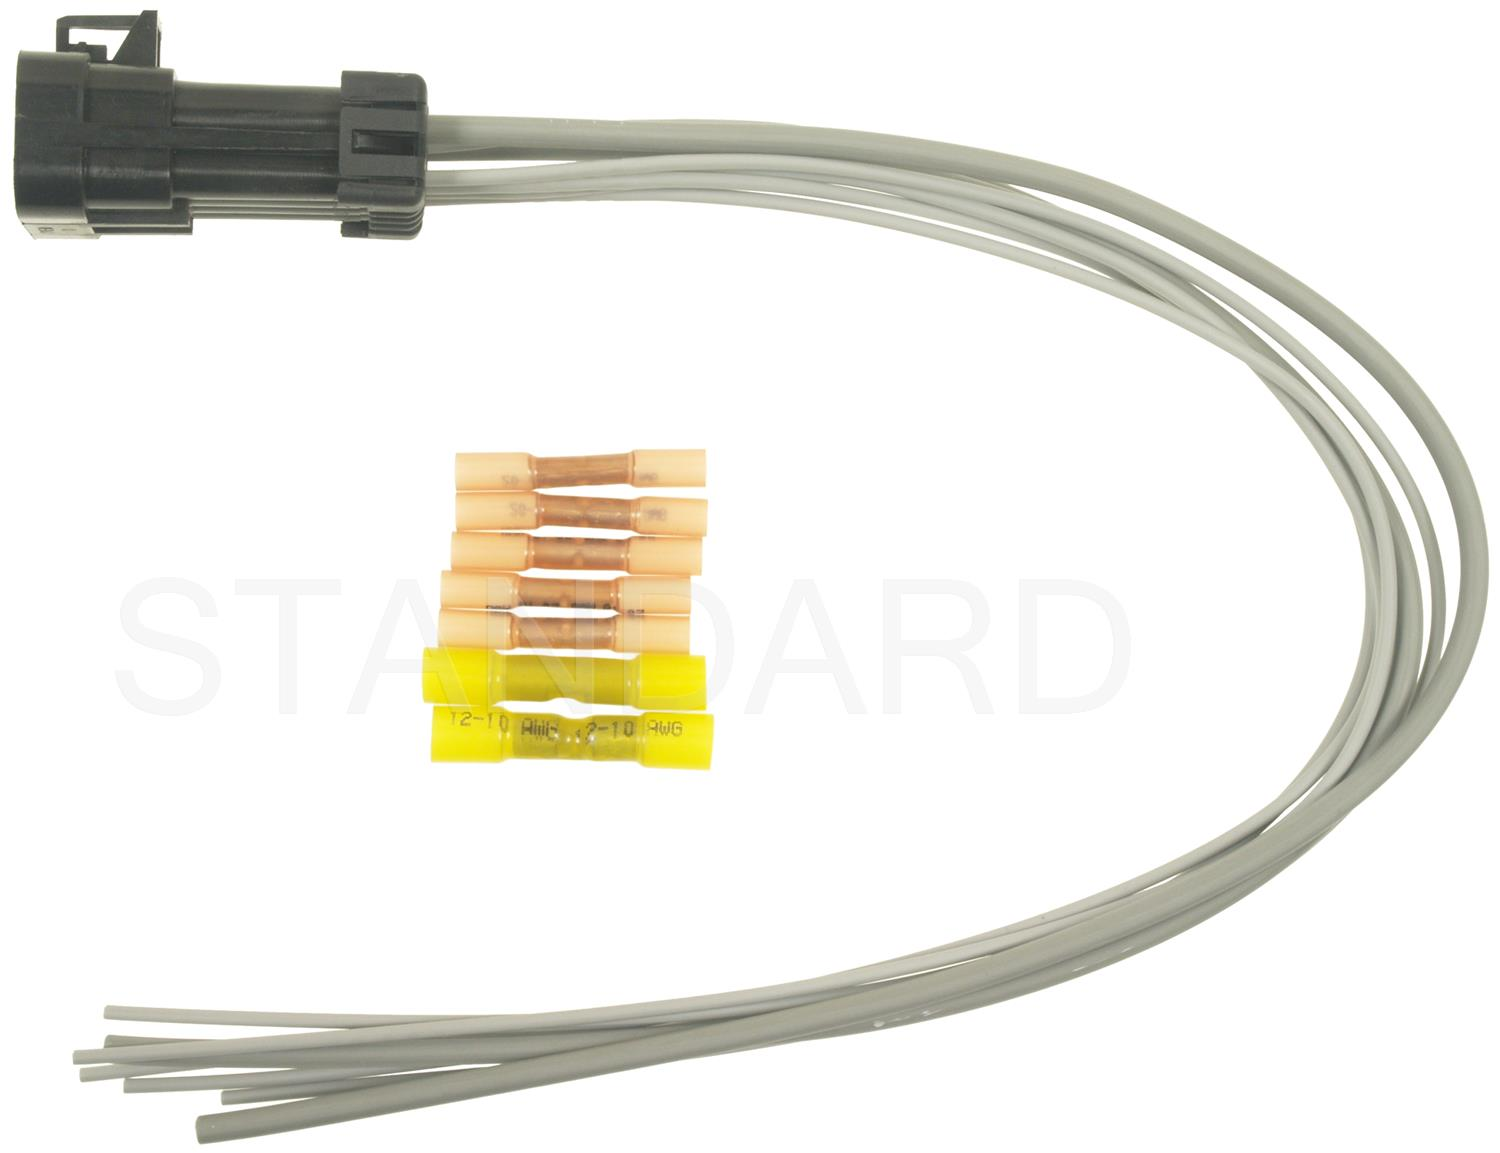 hight resolution of  2000 cadillac deville body wiring harness connector si s 1131